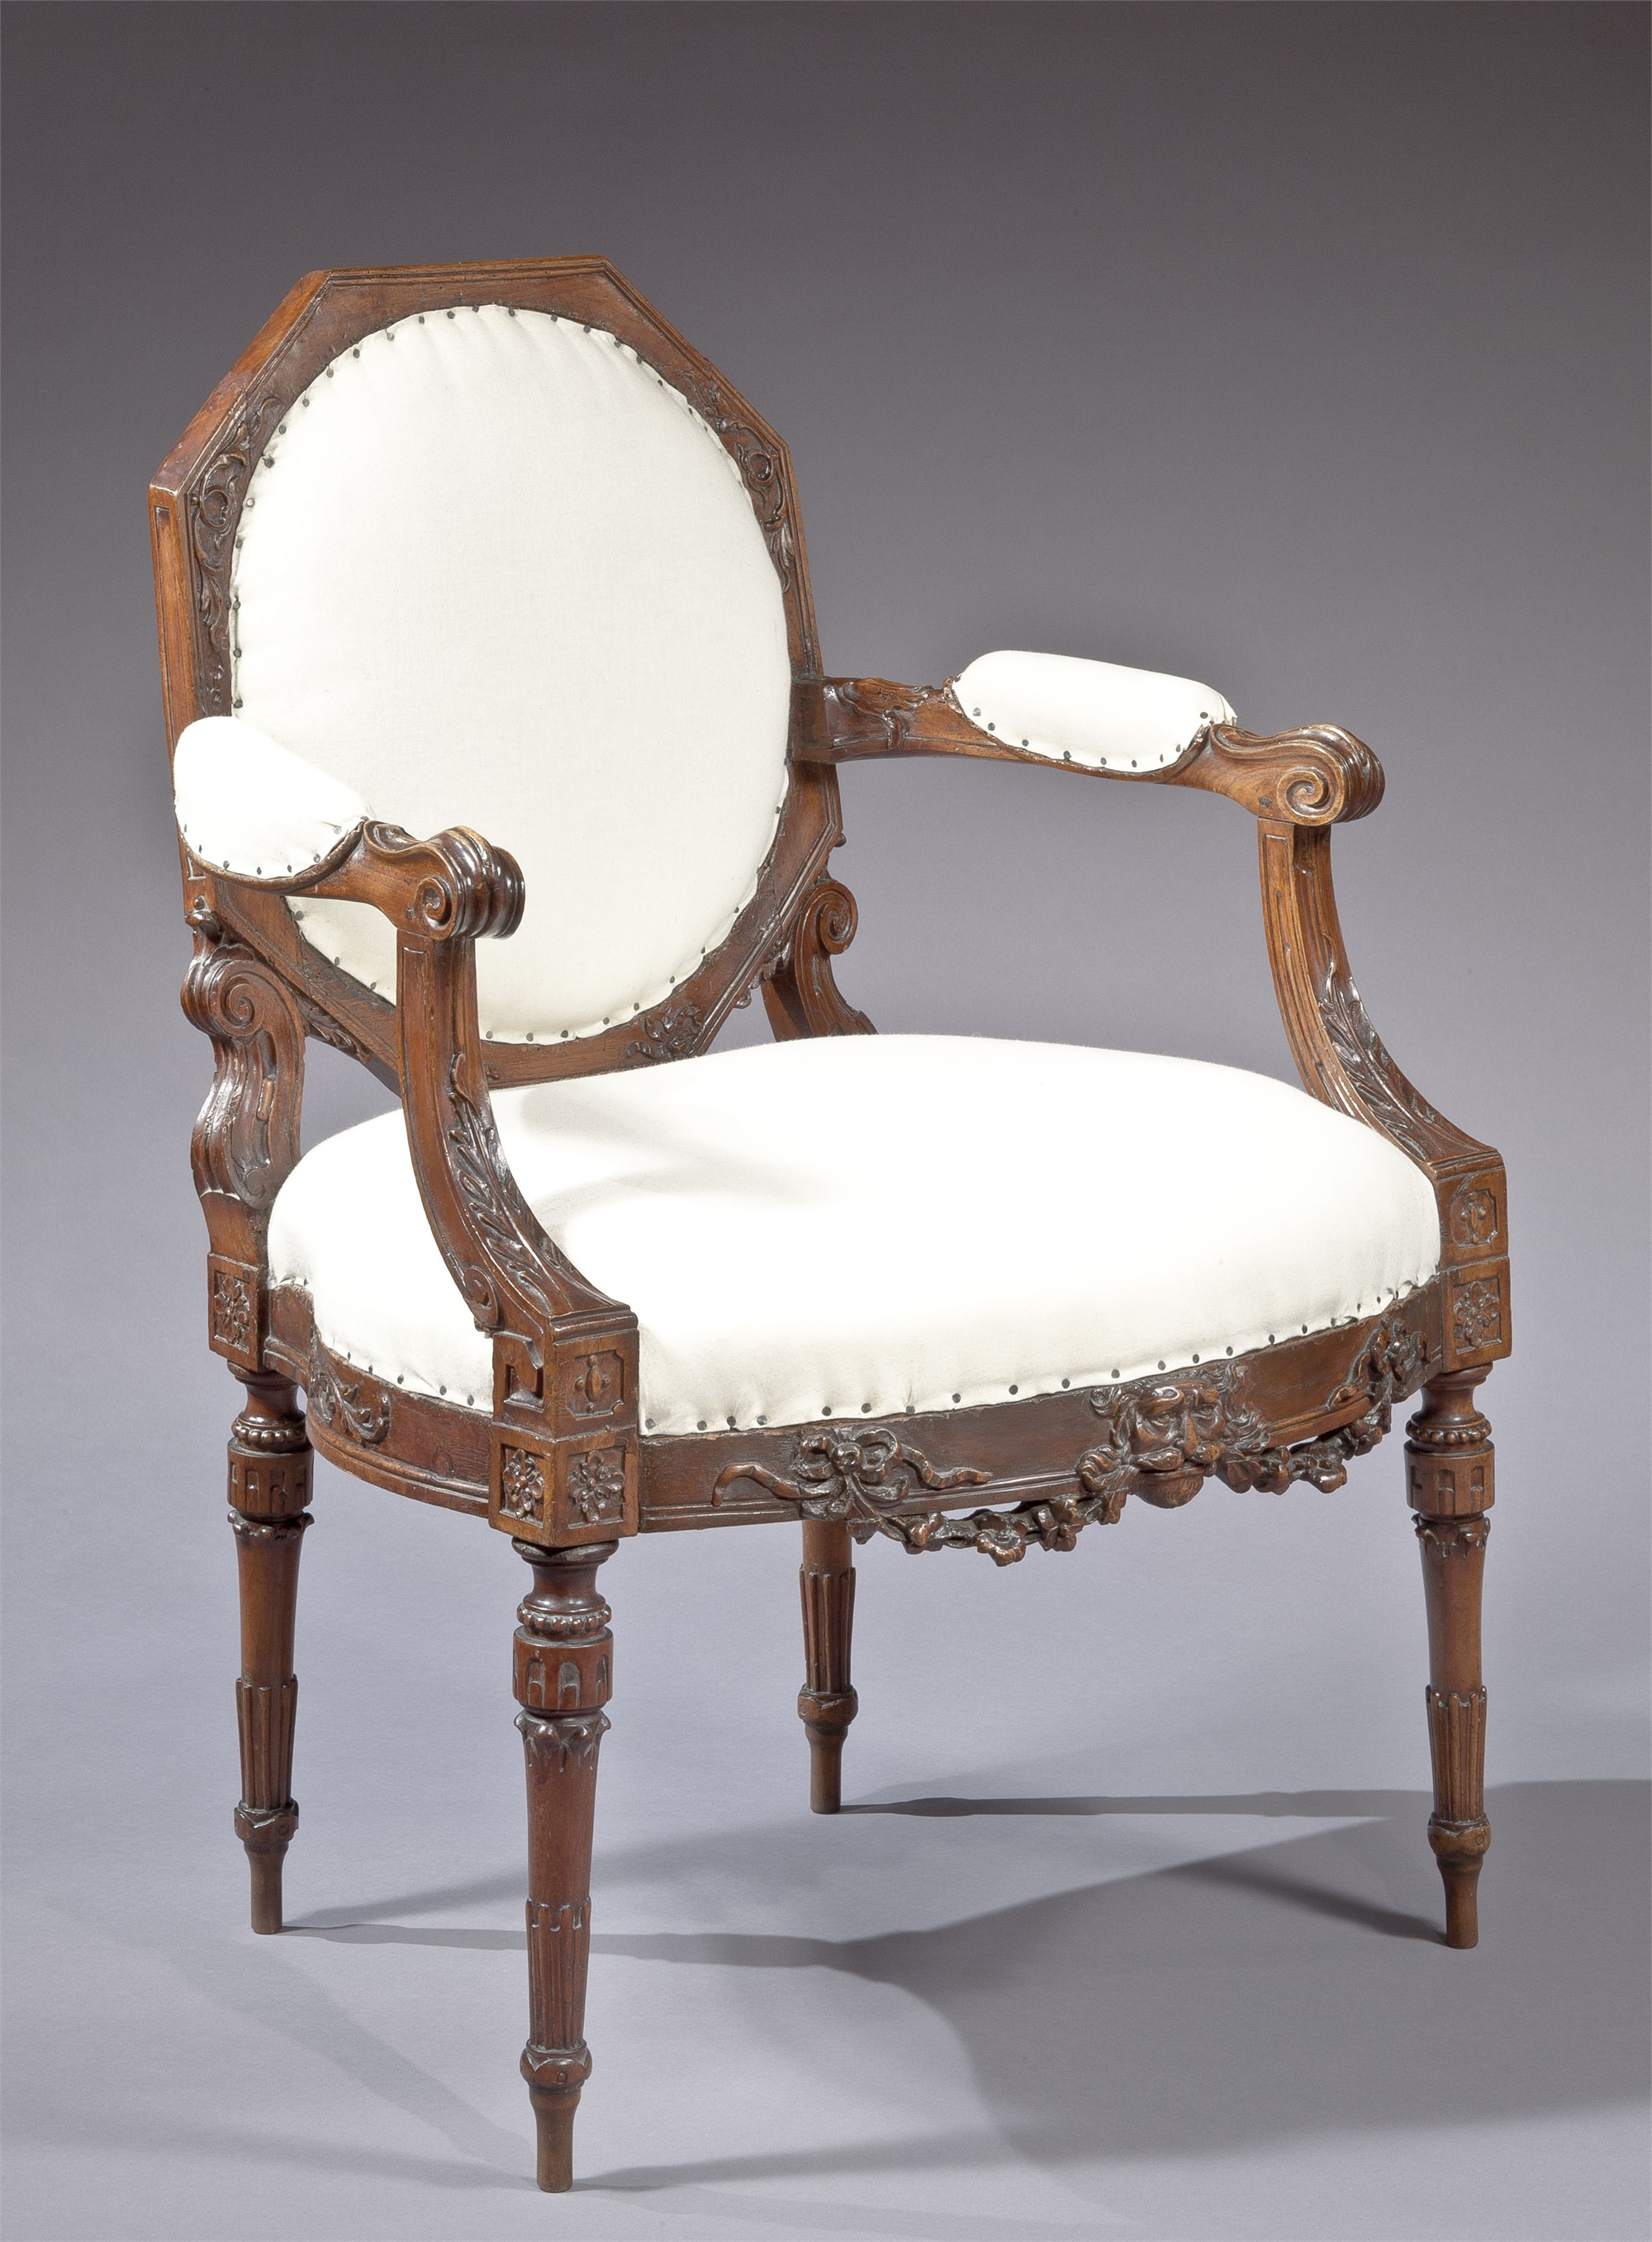 UNUSUAL CONTINENTAL NEOCLASSICAL CARVED MAHOGANY ARMCHAIR